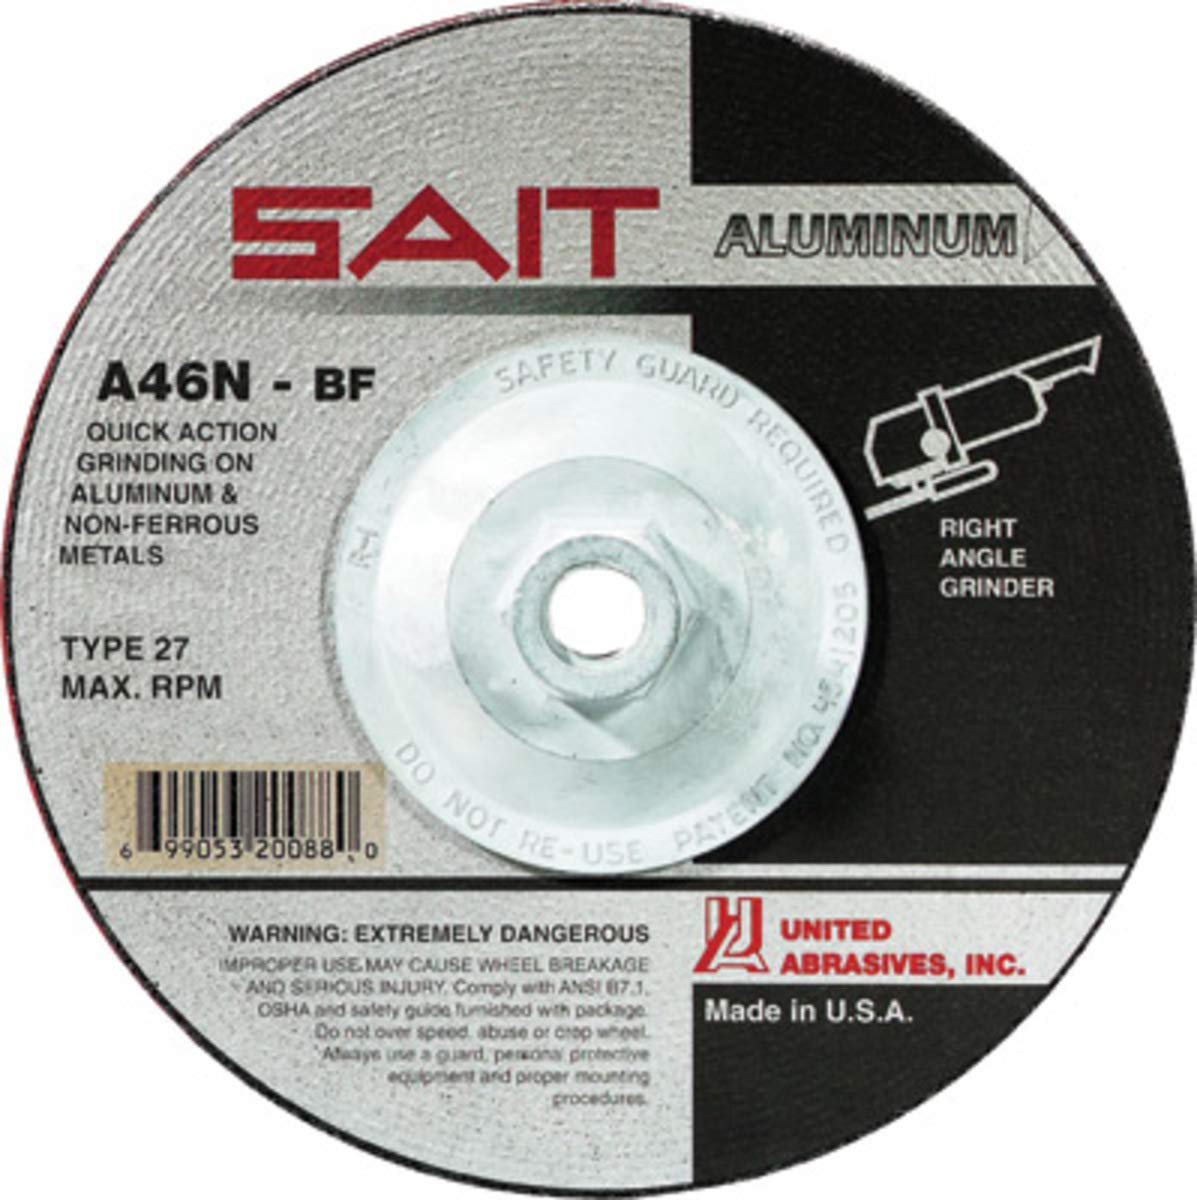 United Abrasives 5'' X 1/4'' X 5/8'' - 11 A46N 46 Grit Aluminum Oxide Type 27 Grinding Wheel, Package Size: 10 Each